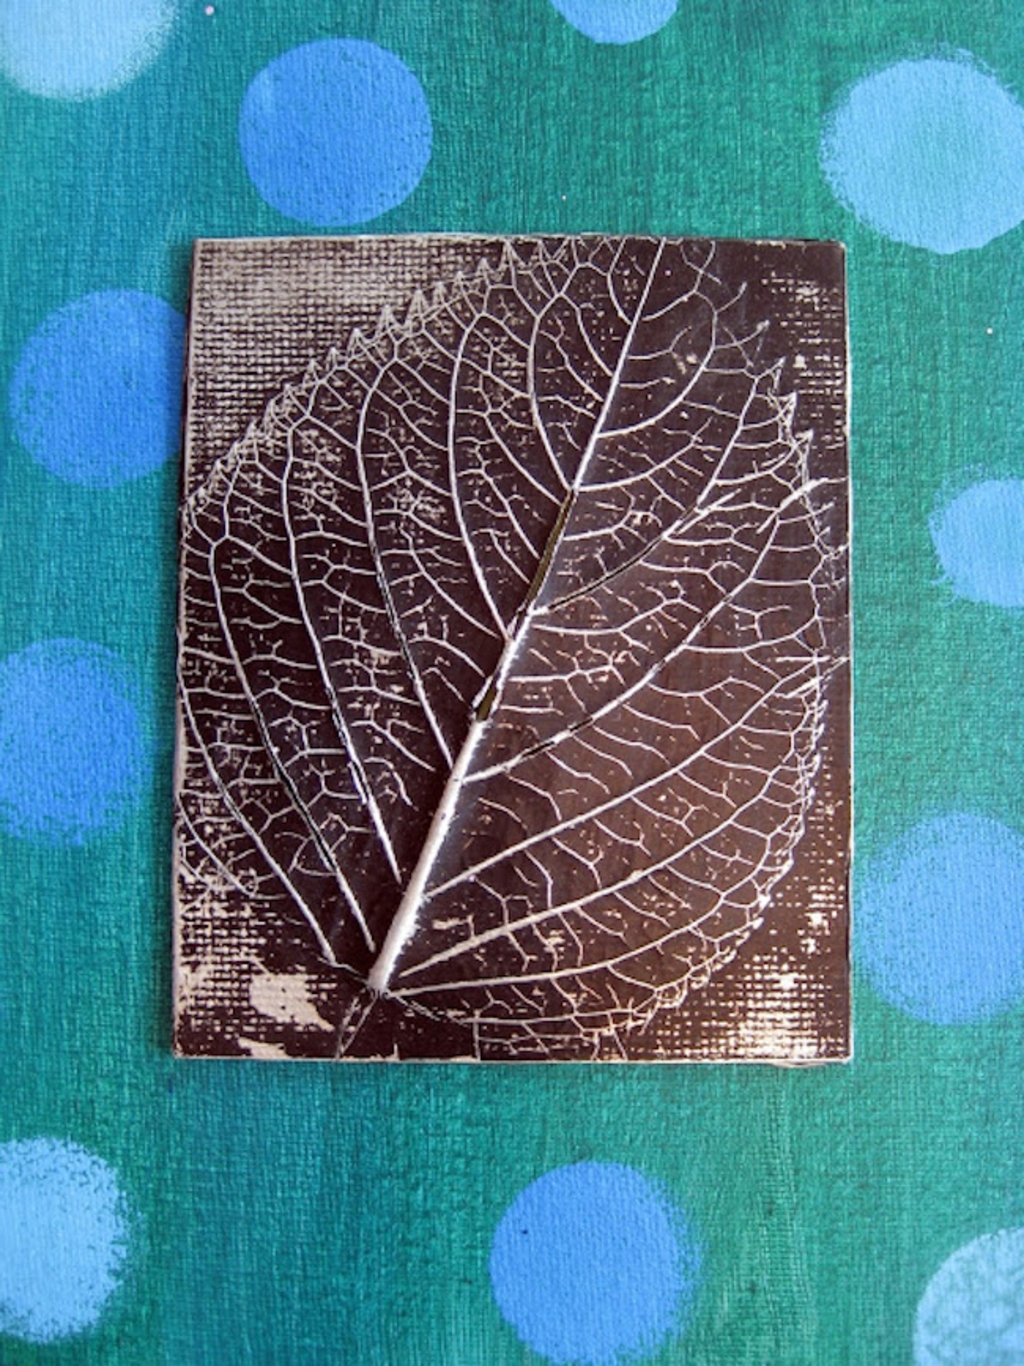 Most Popular Diy Projects: Leaf Relief Craft To Use As Wall Art – 8 Creative Inside Seasonal Wall Art (View 6 of 15)